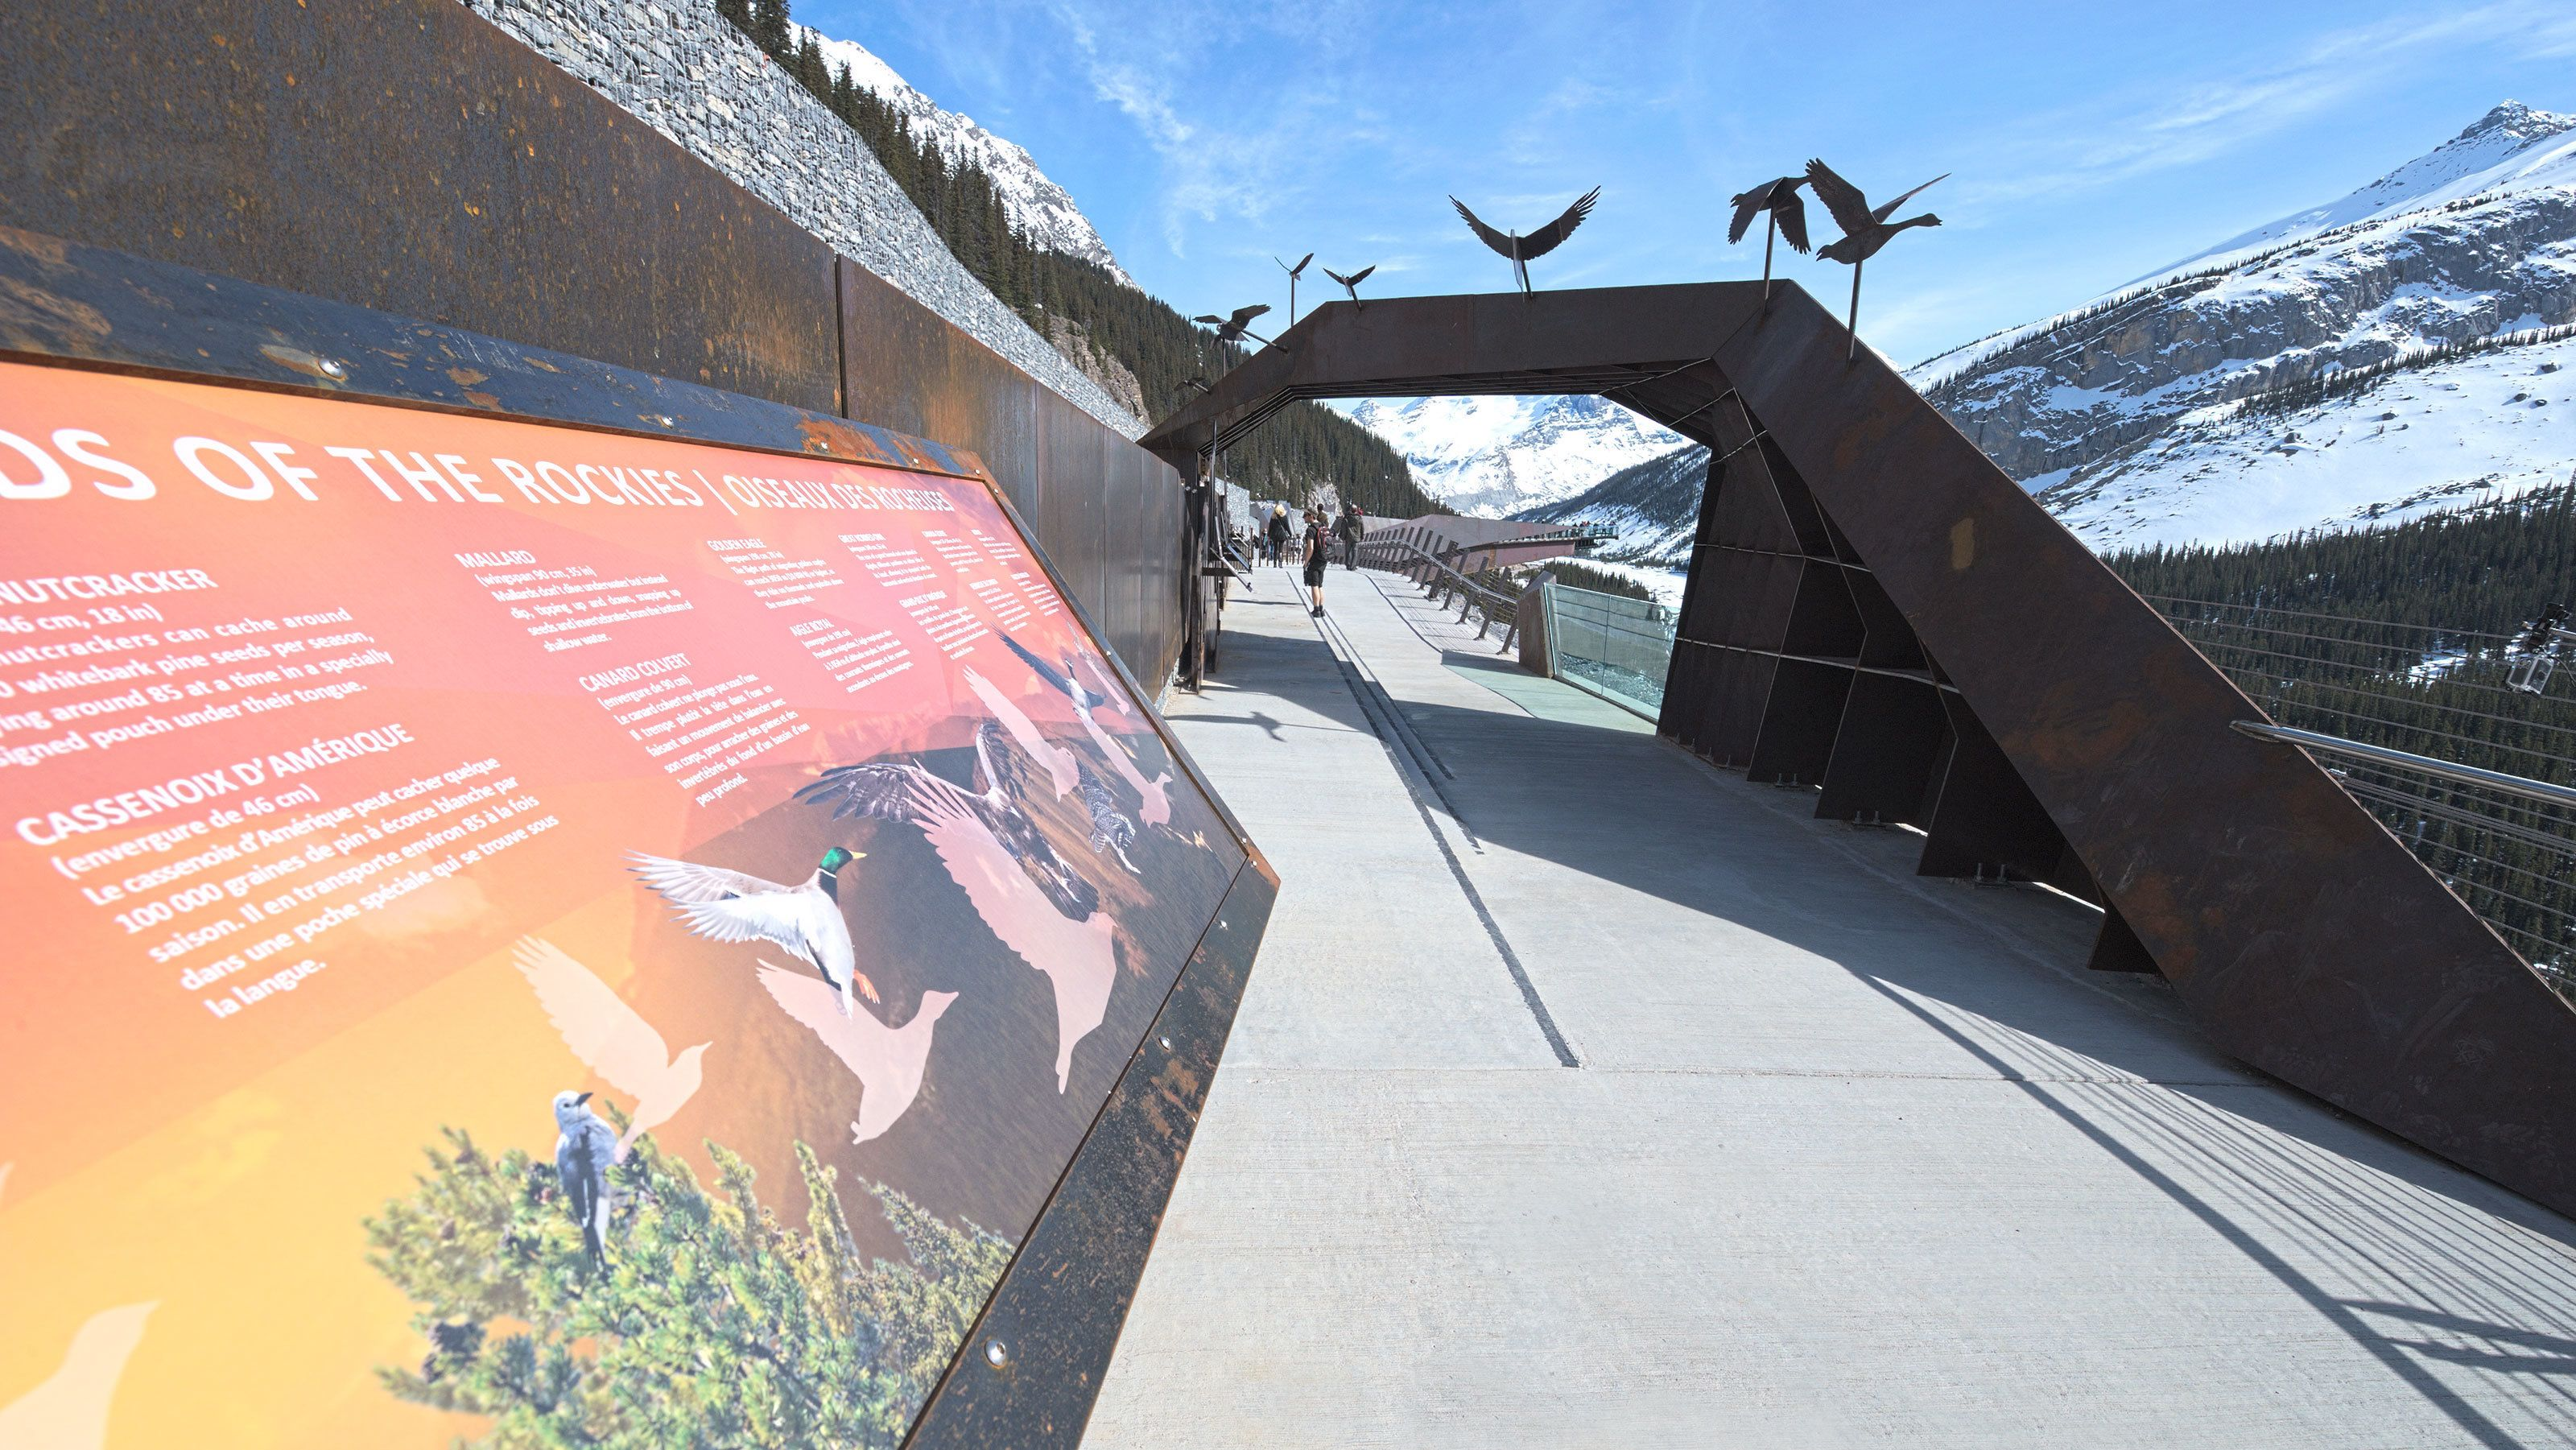 Info panels adorn the Glacier Skywalk with insight on the surrounding wilderness